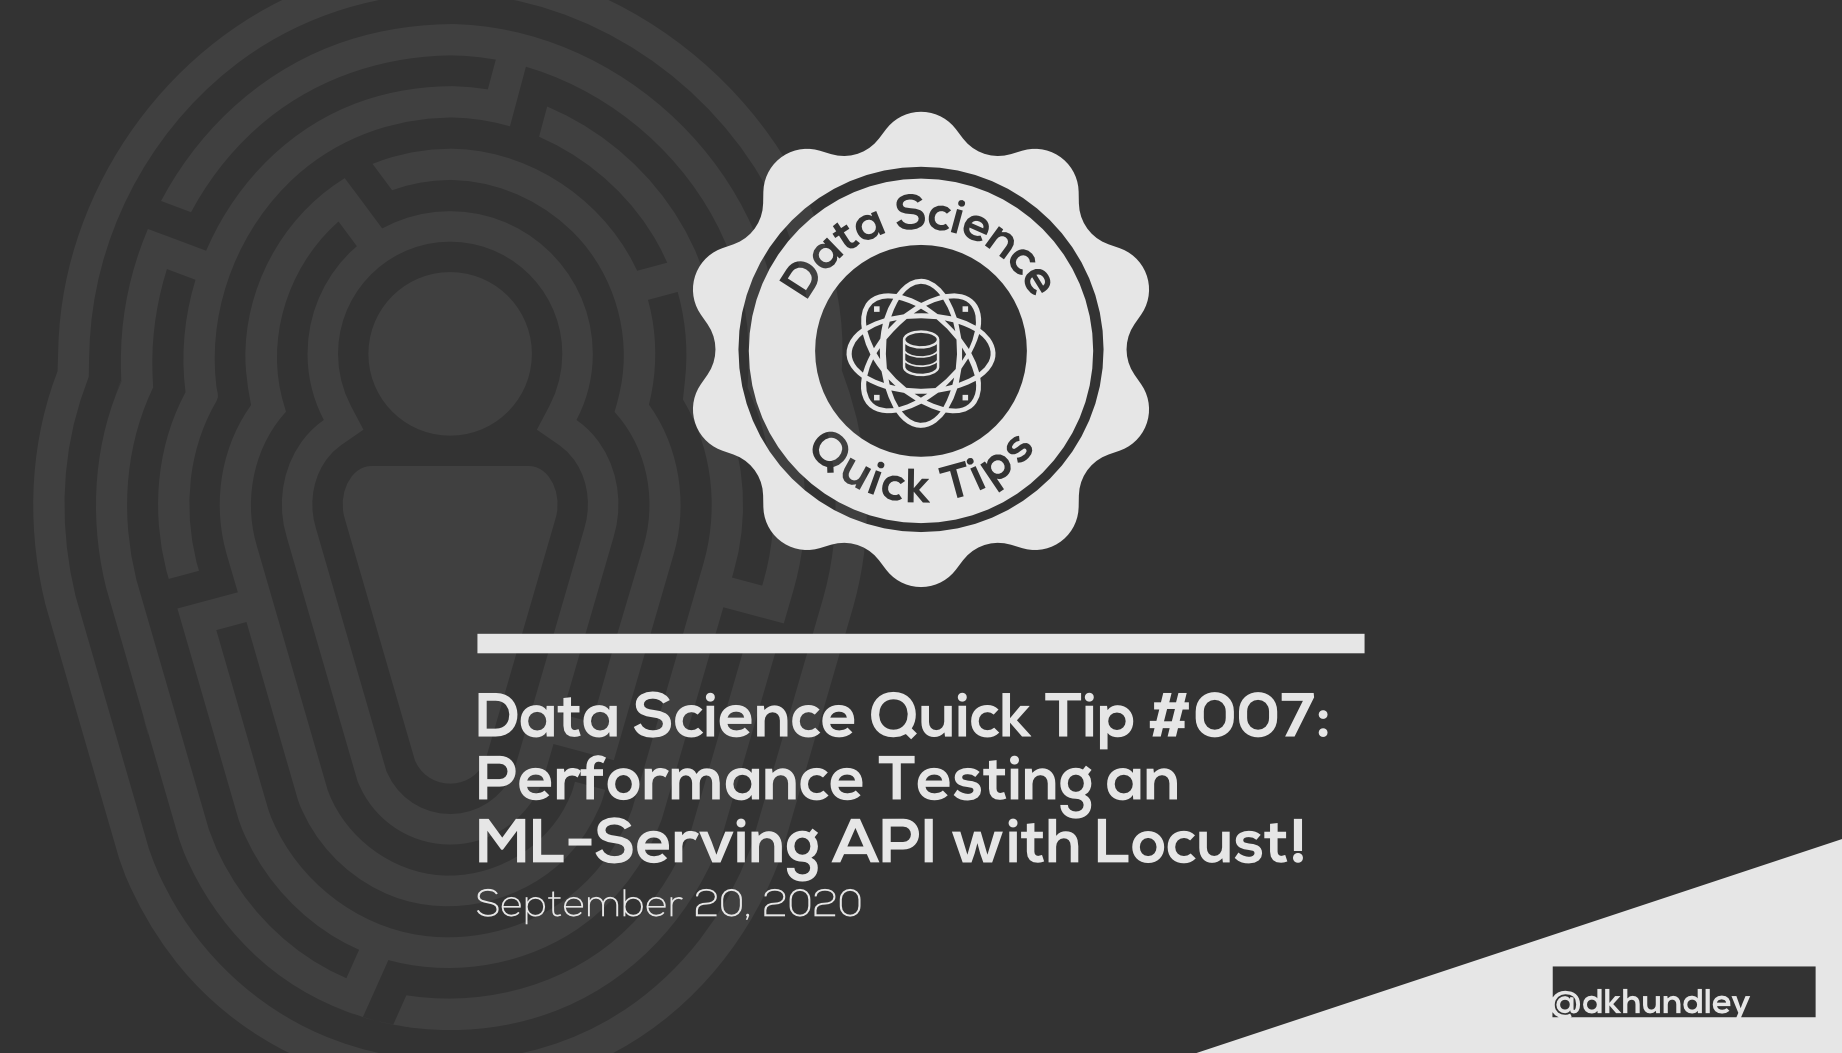 Performance Testing an ML-Serving API with Locust!